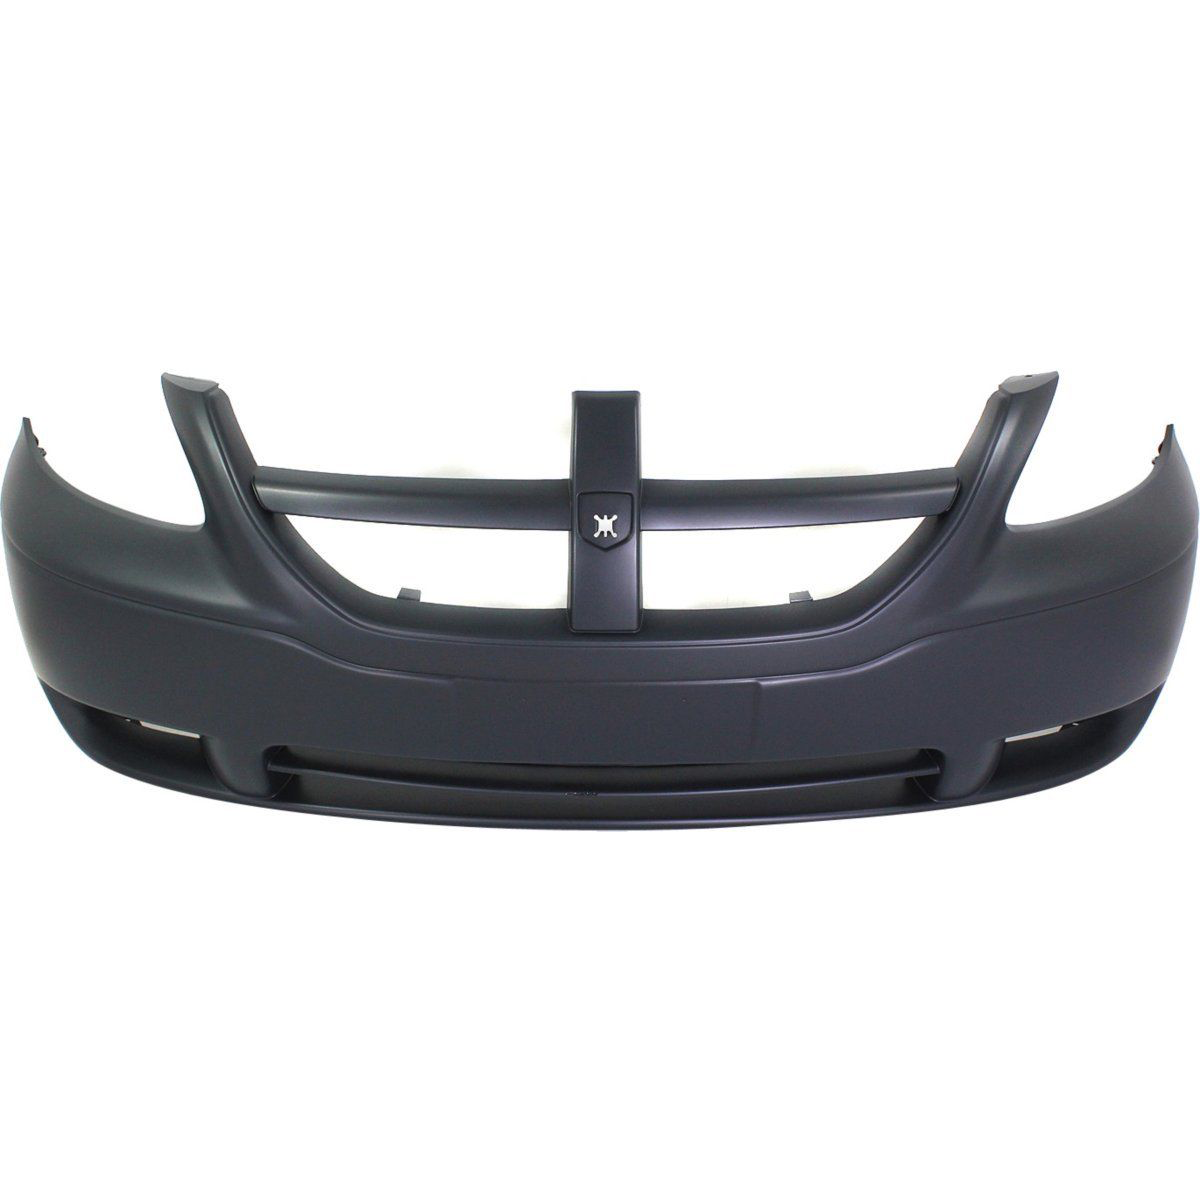 2005-2007 DODGE CARAVAN Front Bumper Cover w/o Fog Lamps Painted to Match